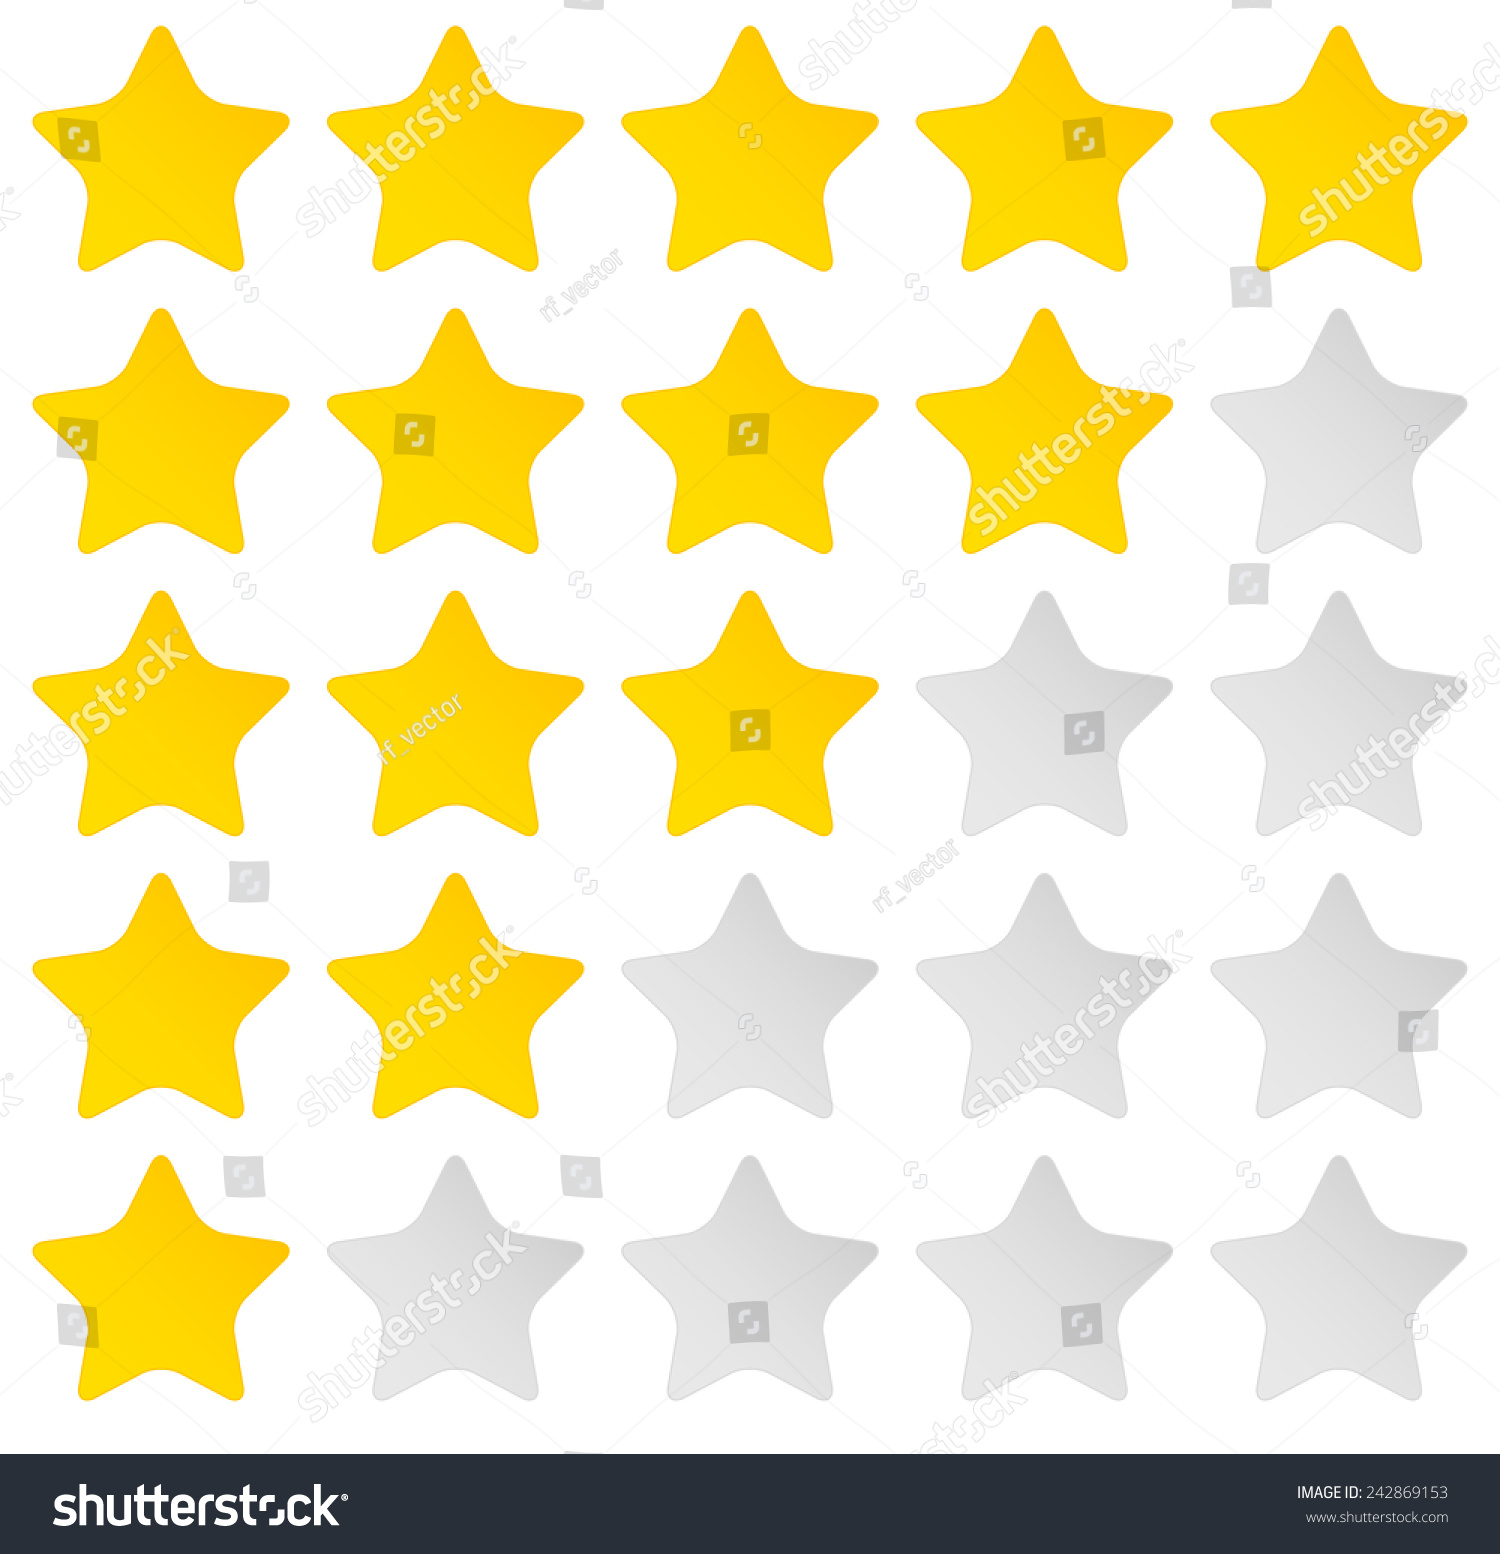 Clipart - 5 Star Rating System